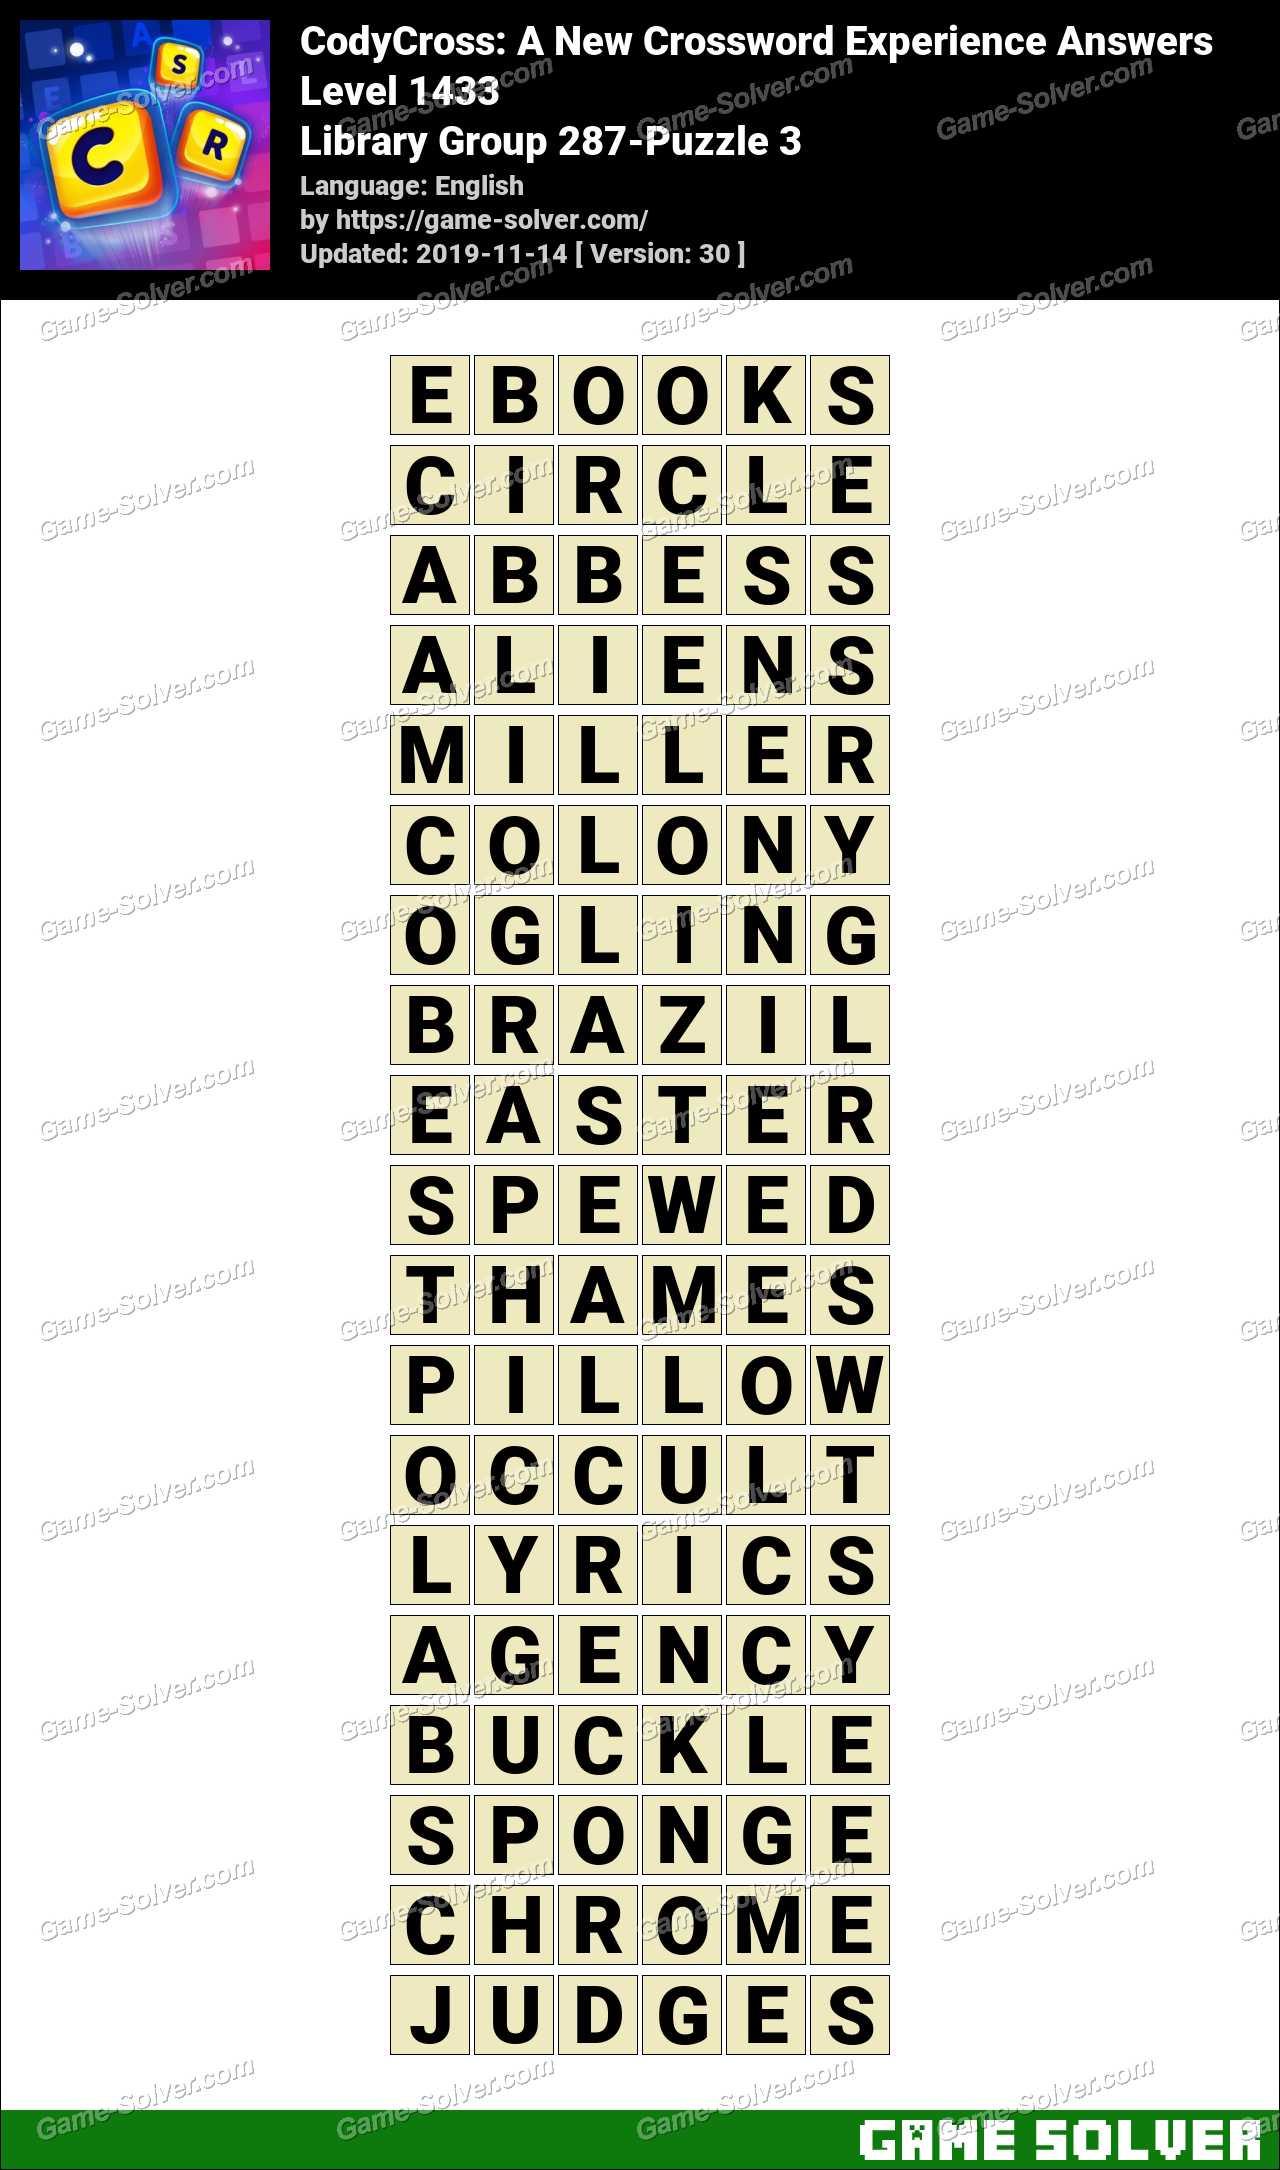 CodyCross Library Group 287-Puzzle 3 Answers